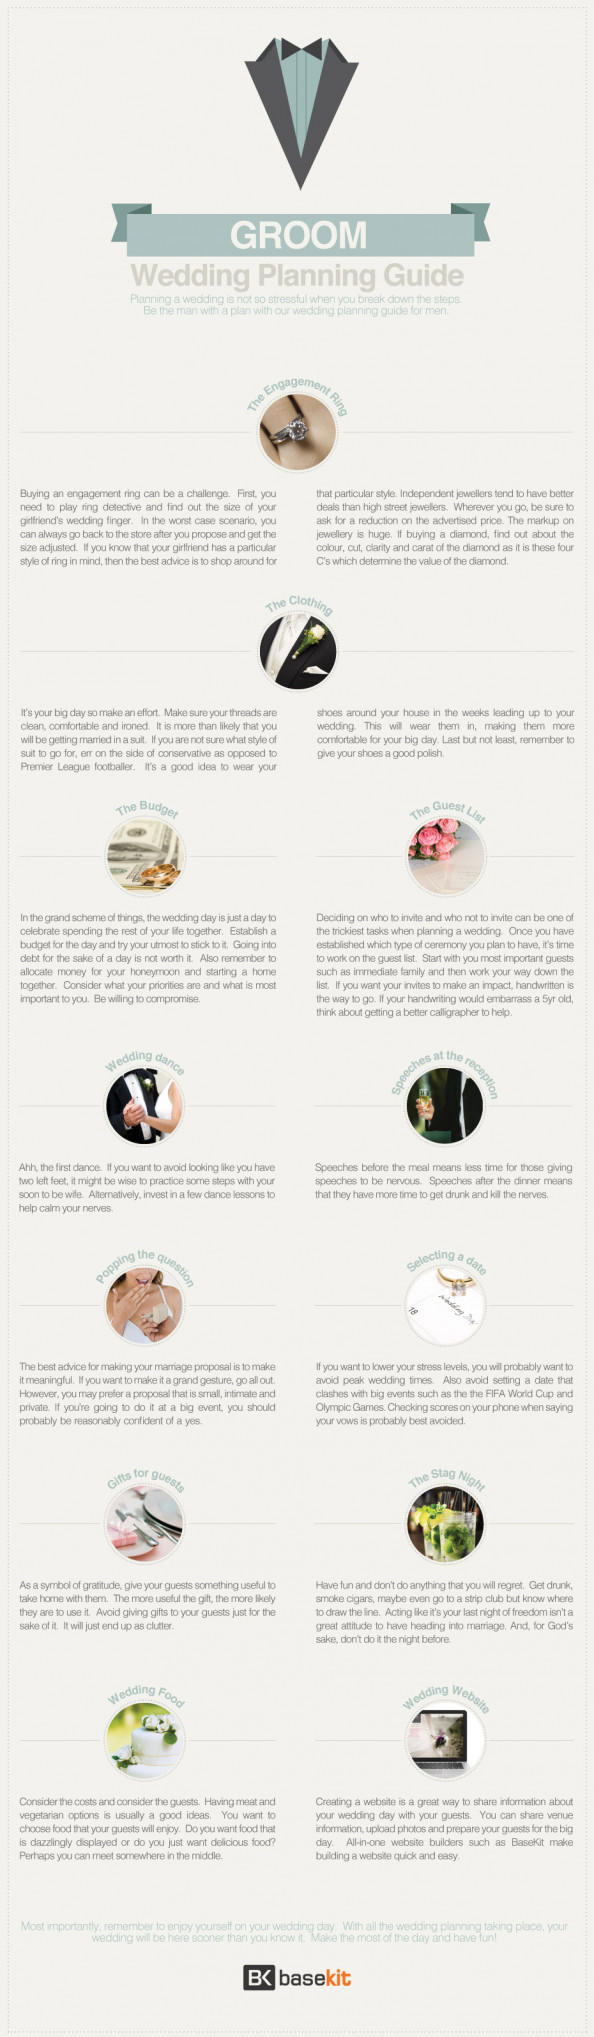 Groom&#039;s Guide To Wedding Planning Infographic